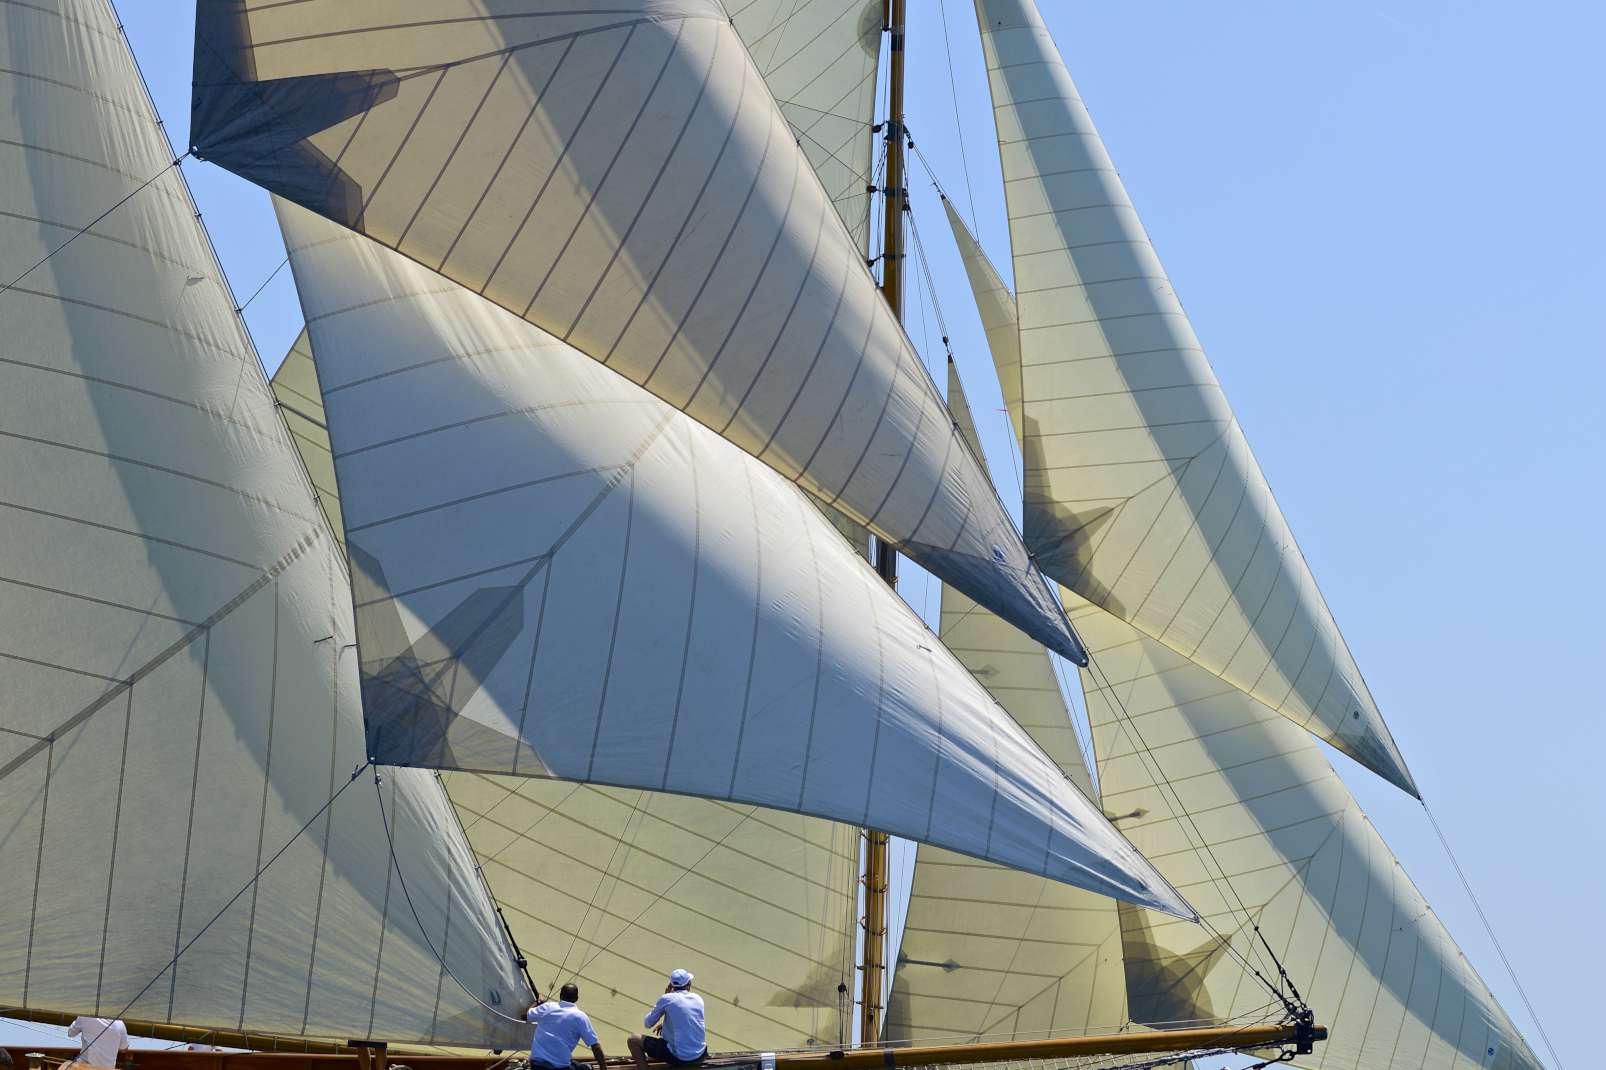 Les Voiles d'Antibes 2